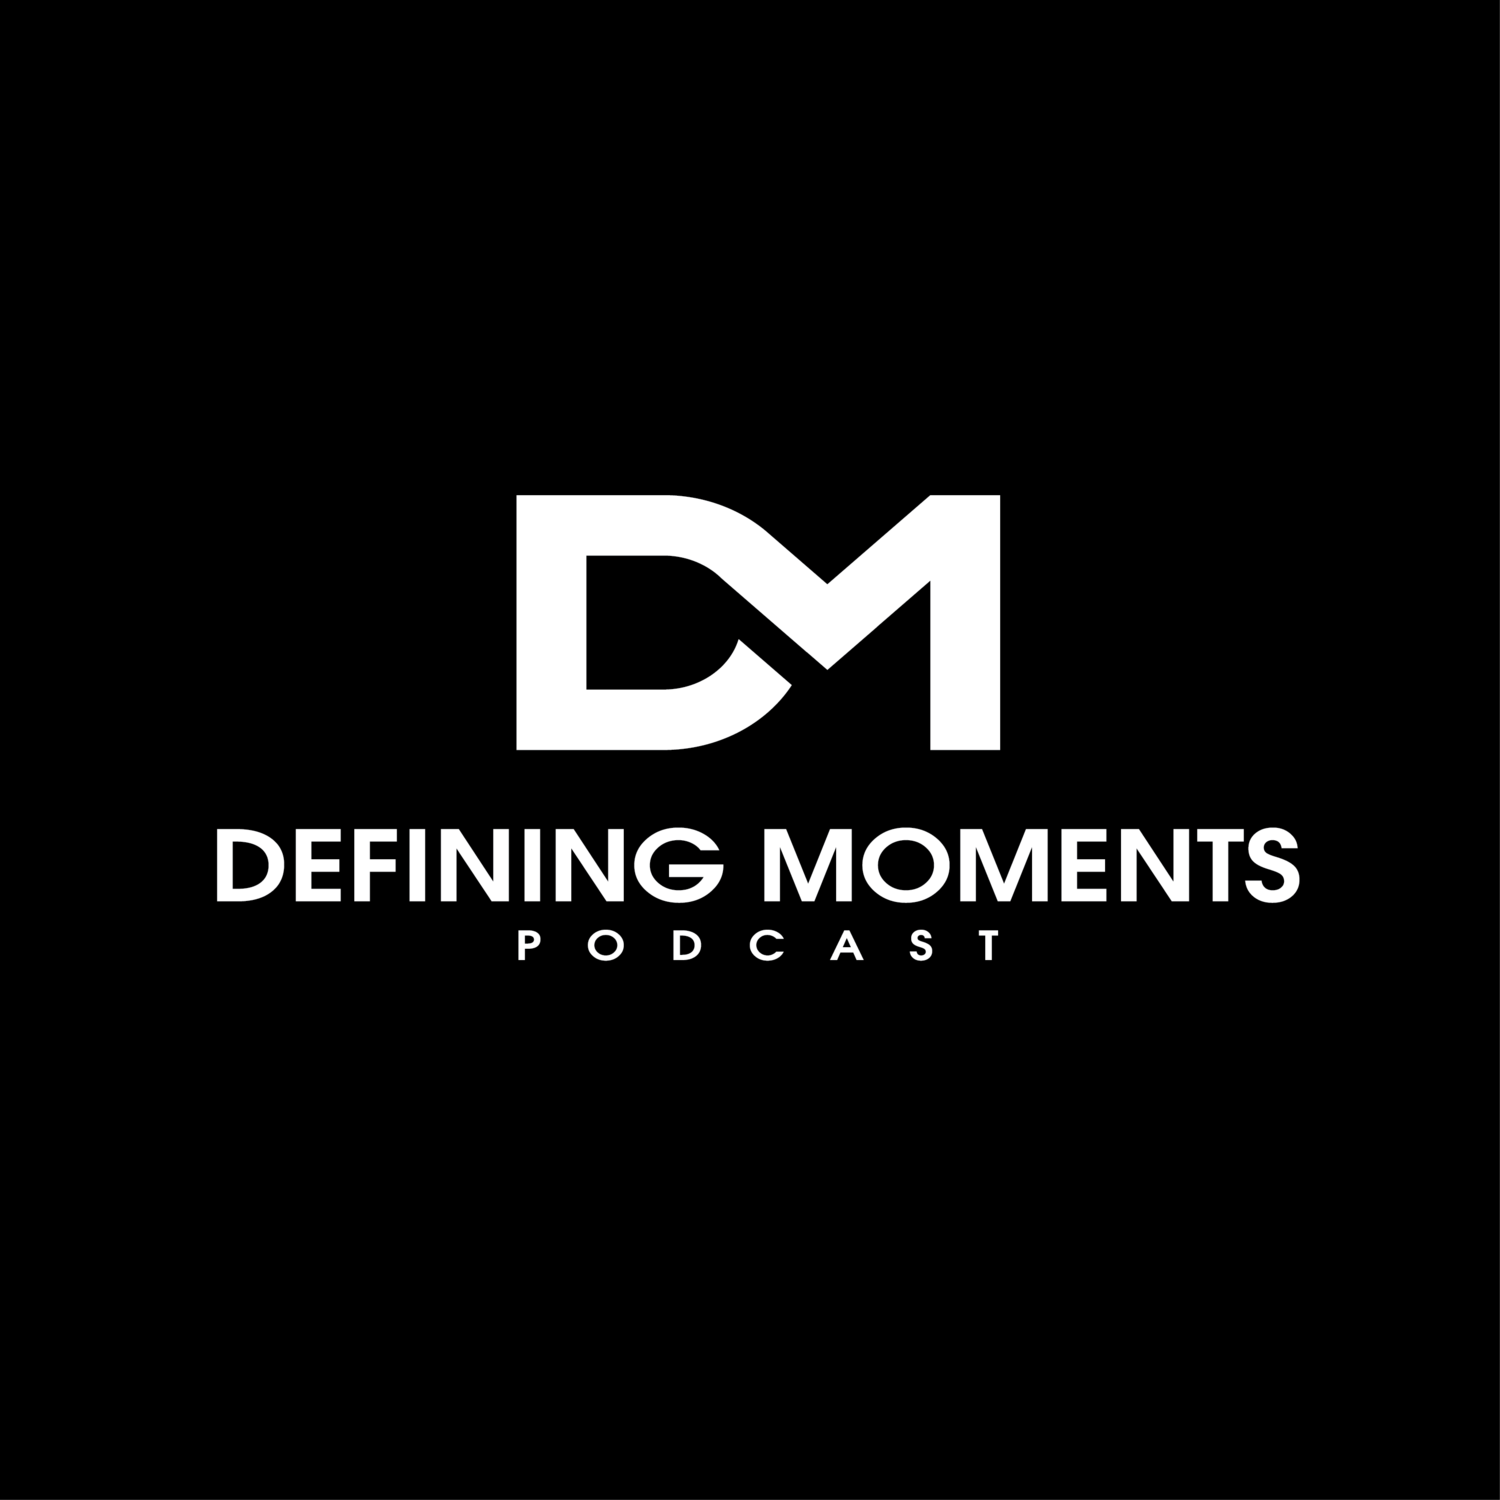 Defining+Moments+Podcast+Square.png